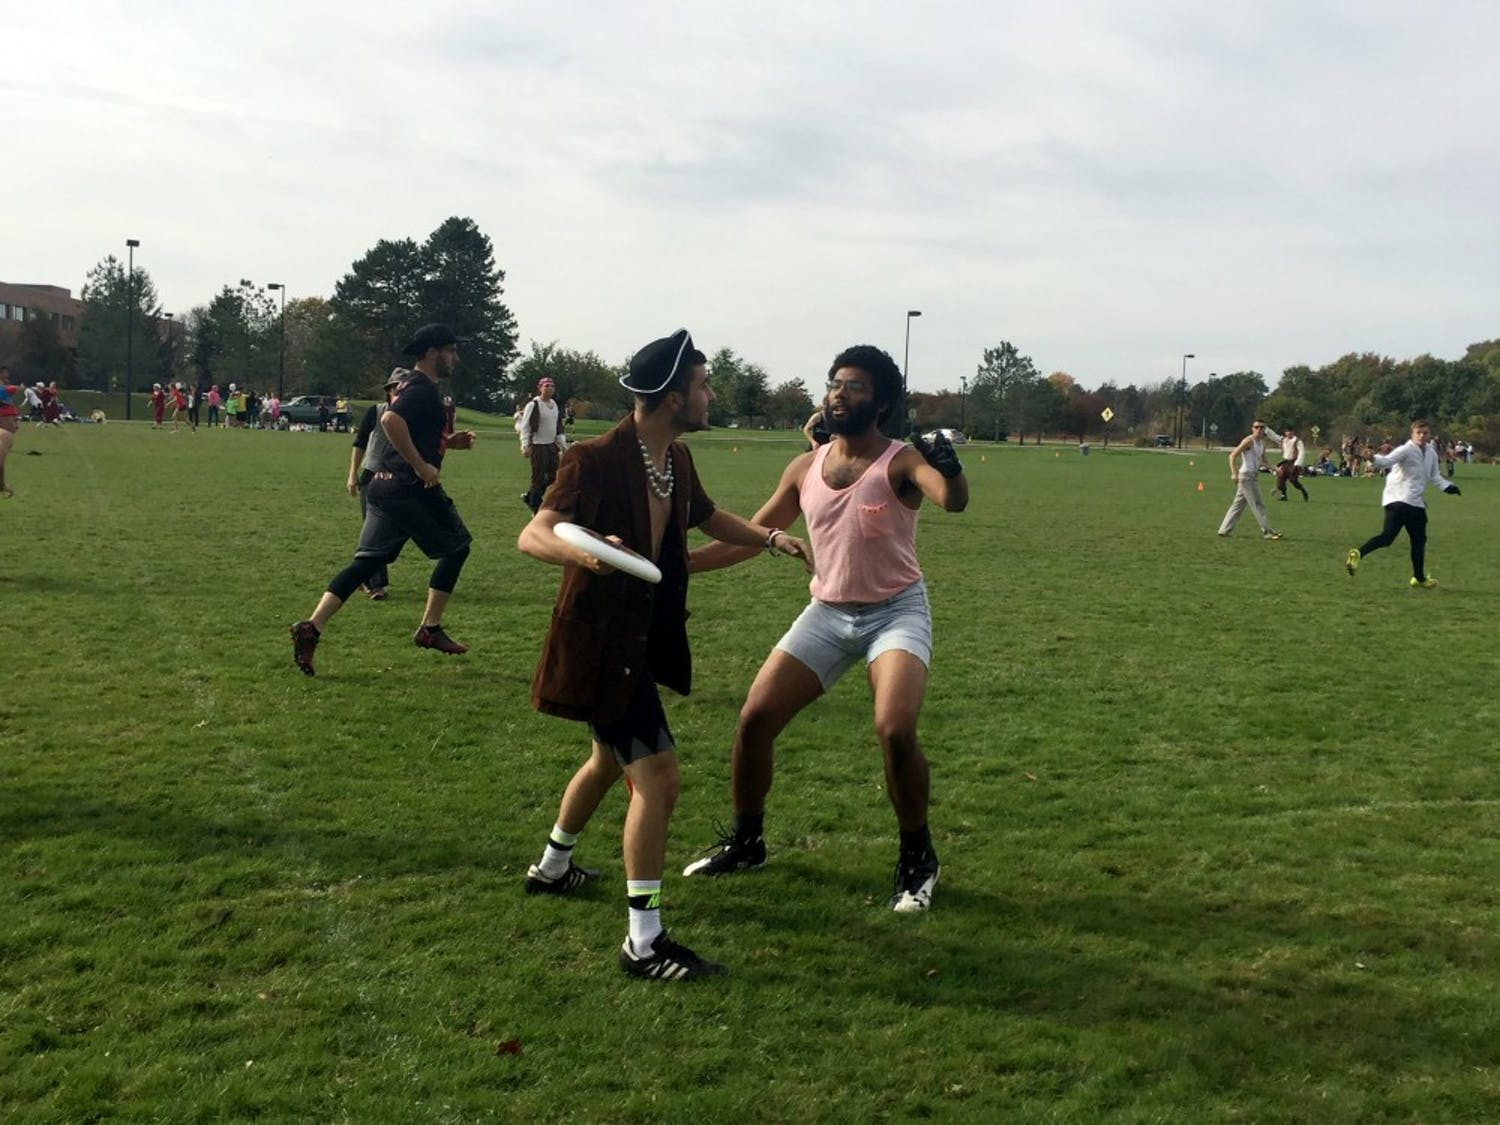 A hustler tries blocking a pirate during an ultimate frisbee game. Many dream match-ups happened this past weekend at the Danse Macabre frisbee tournament.